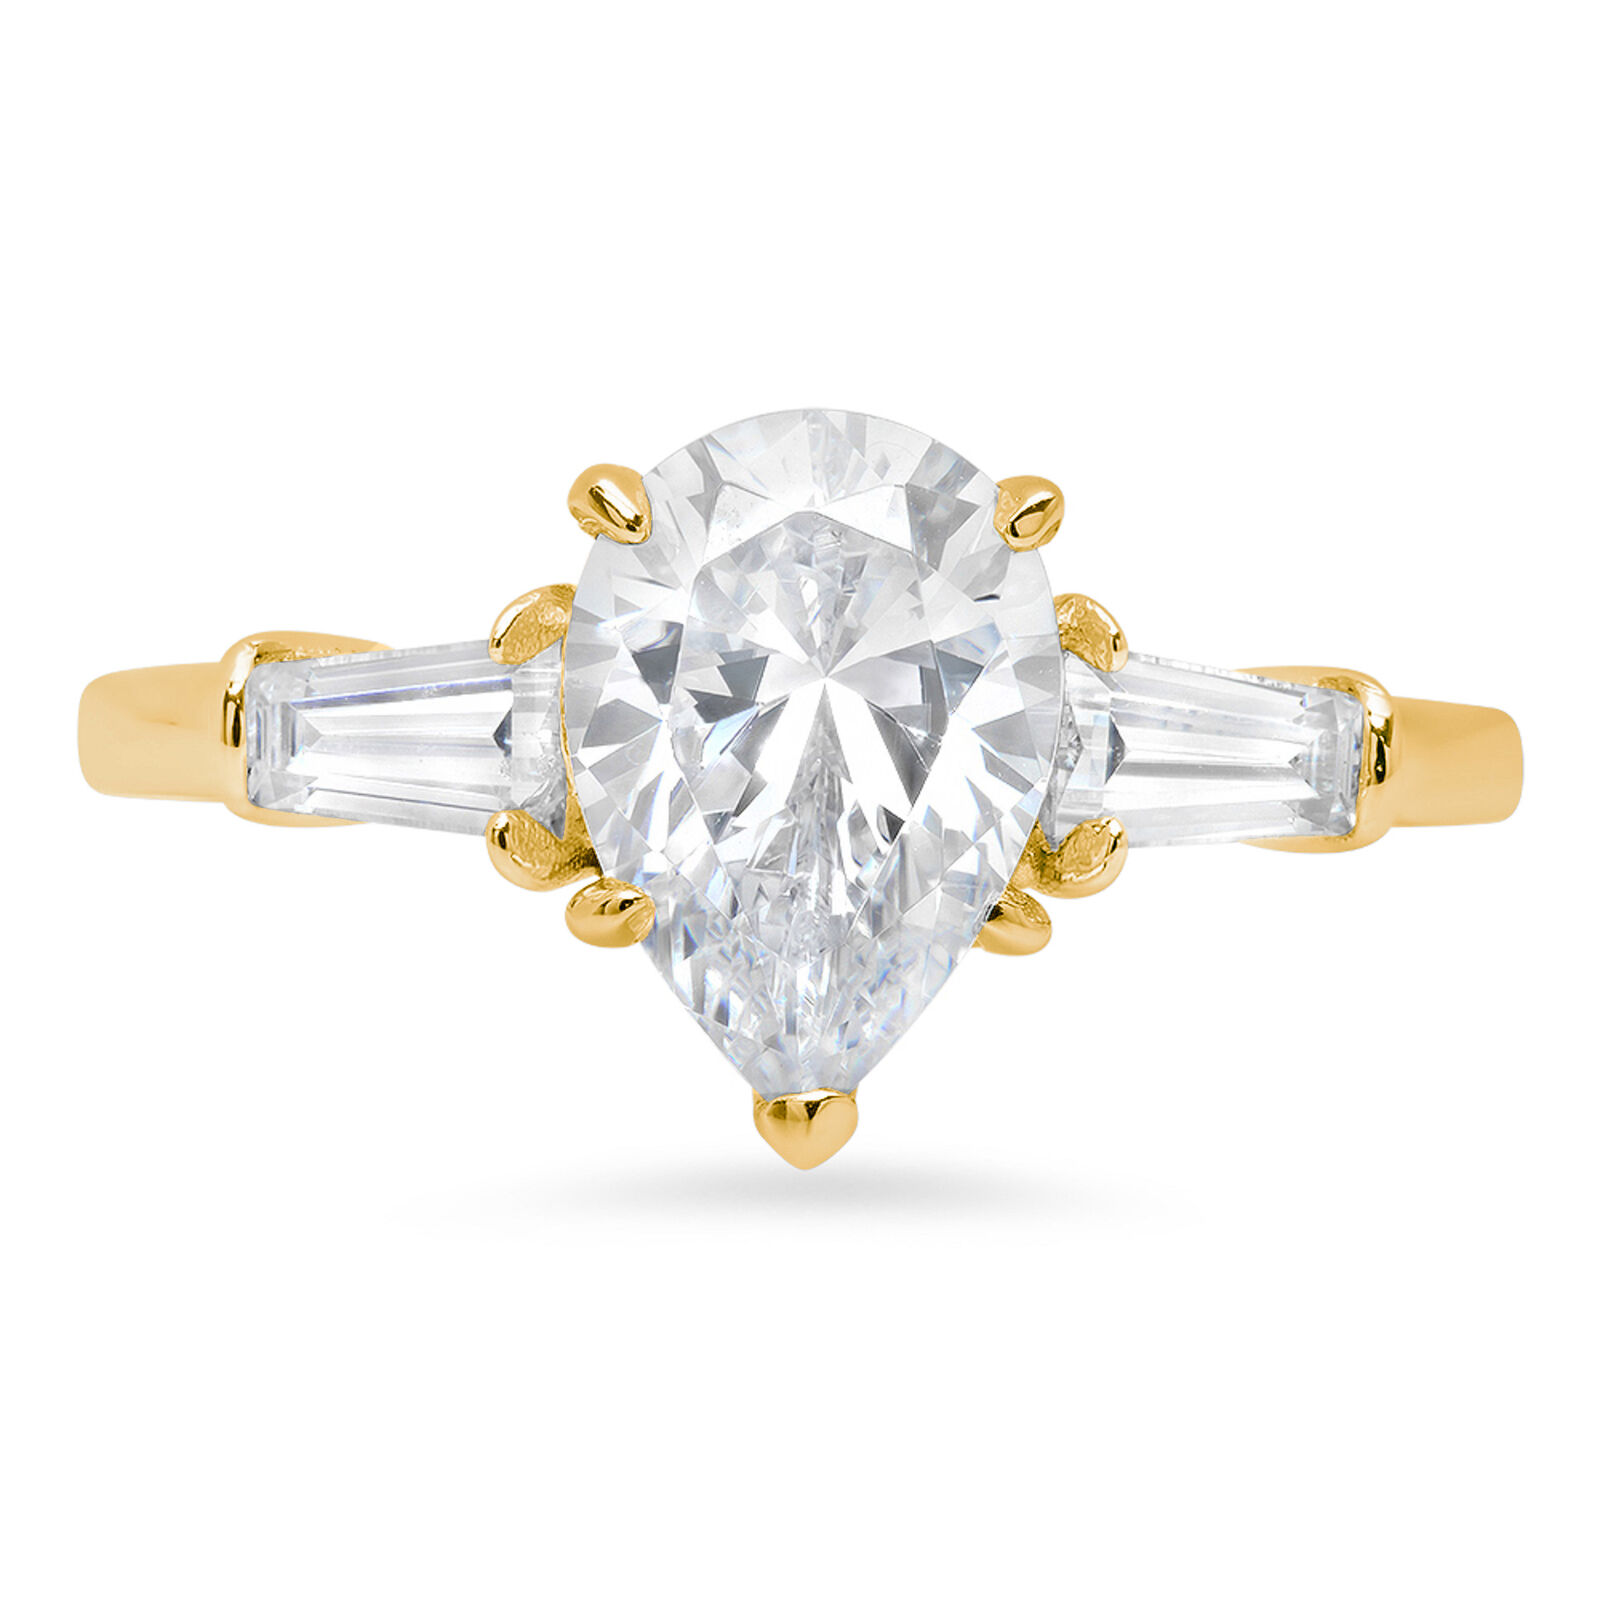 2.5 Pear Baguette Cut 3-Stone Statement Engagement Promise Ring 14k Yellow gold